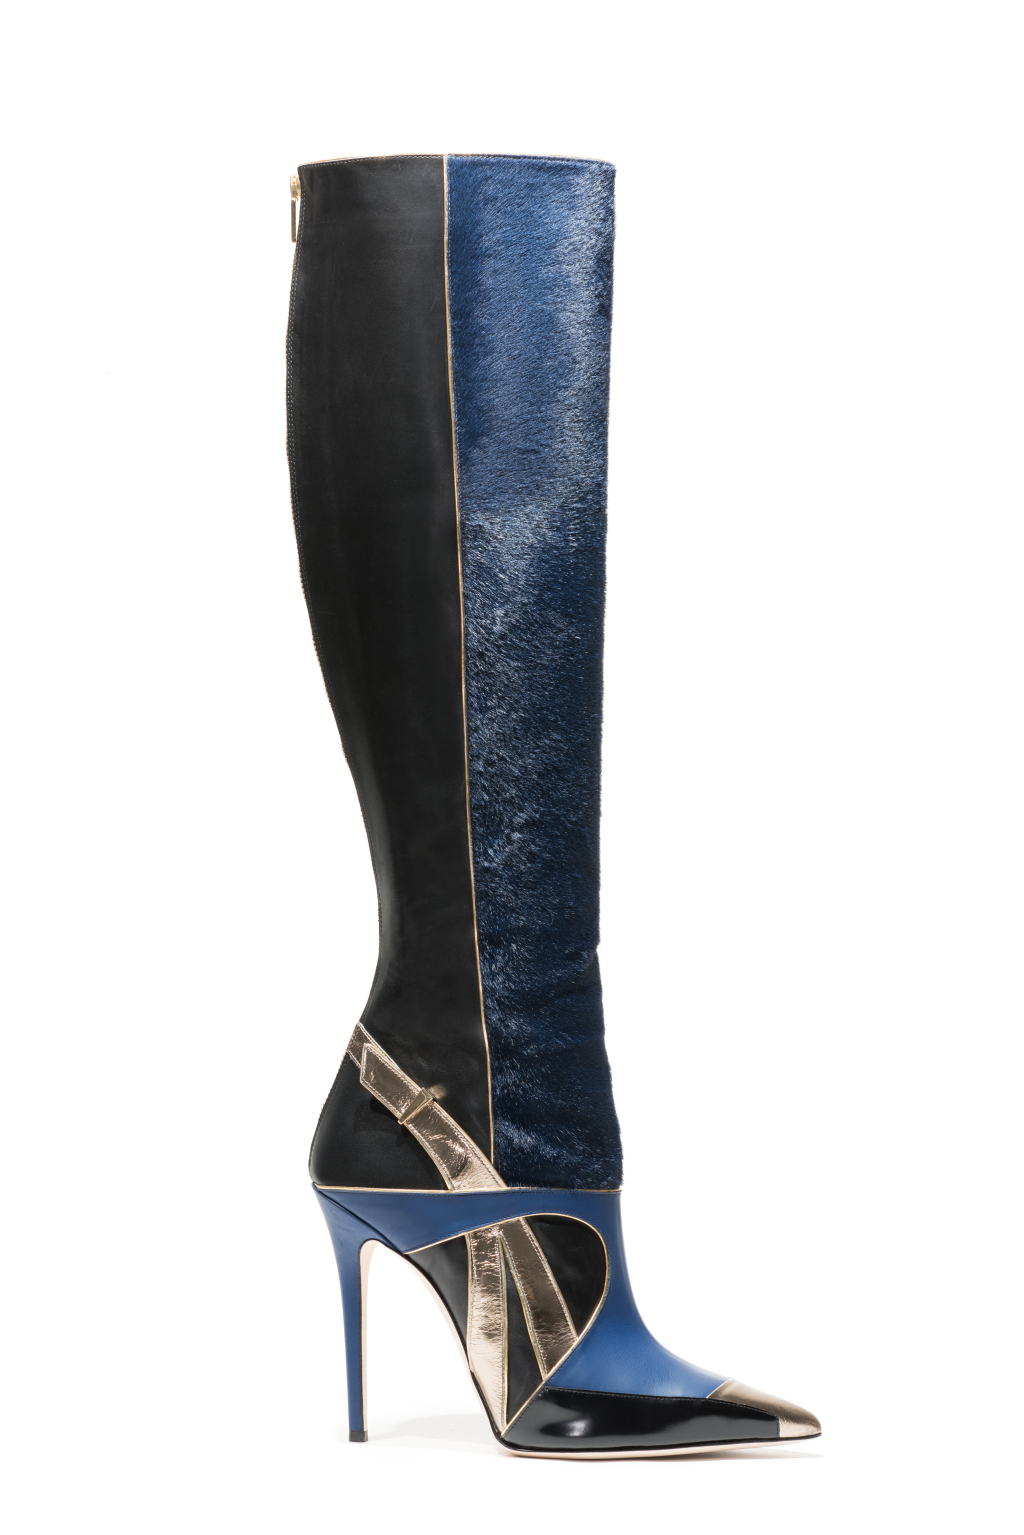 10-prabal-gurung-tall-boot-11